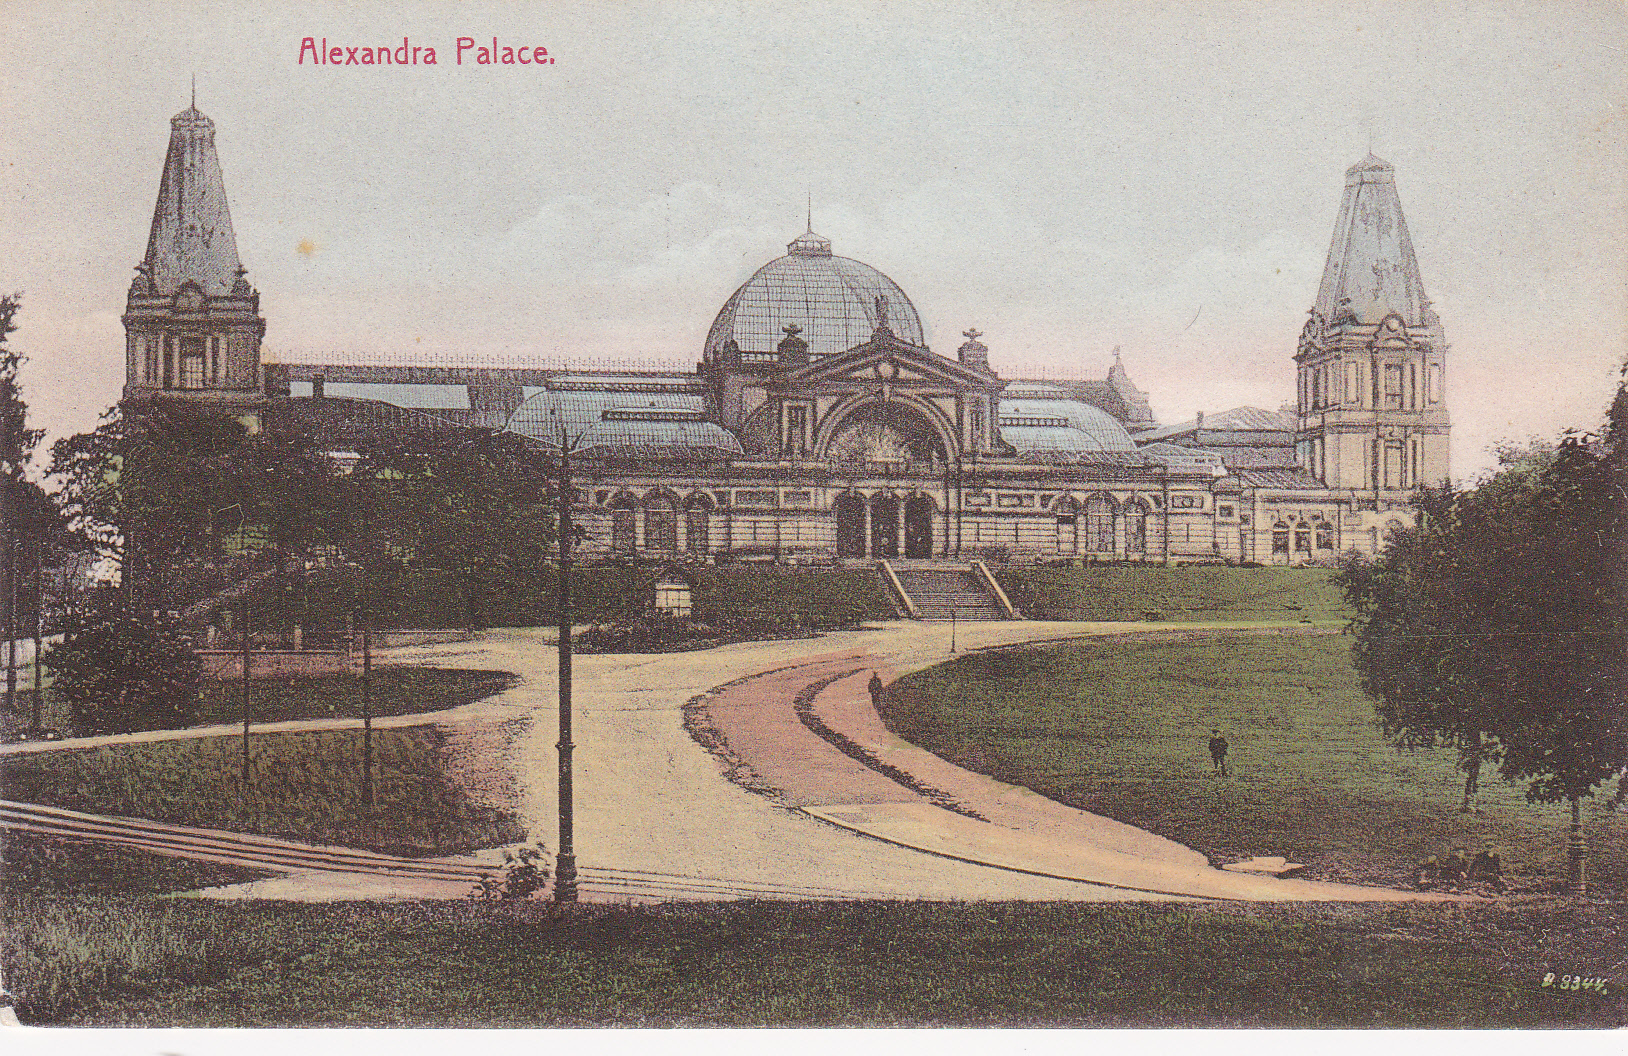 Alexandra Palace in 1875, rebuilt after the fire that destroyed it 2 weeks after its completion in 1873.